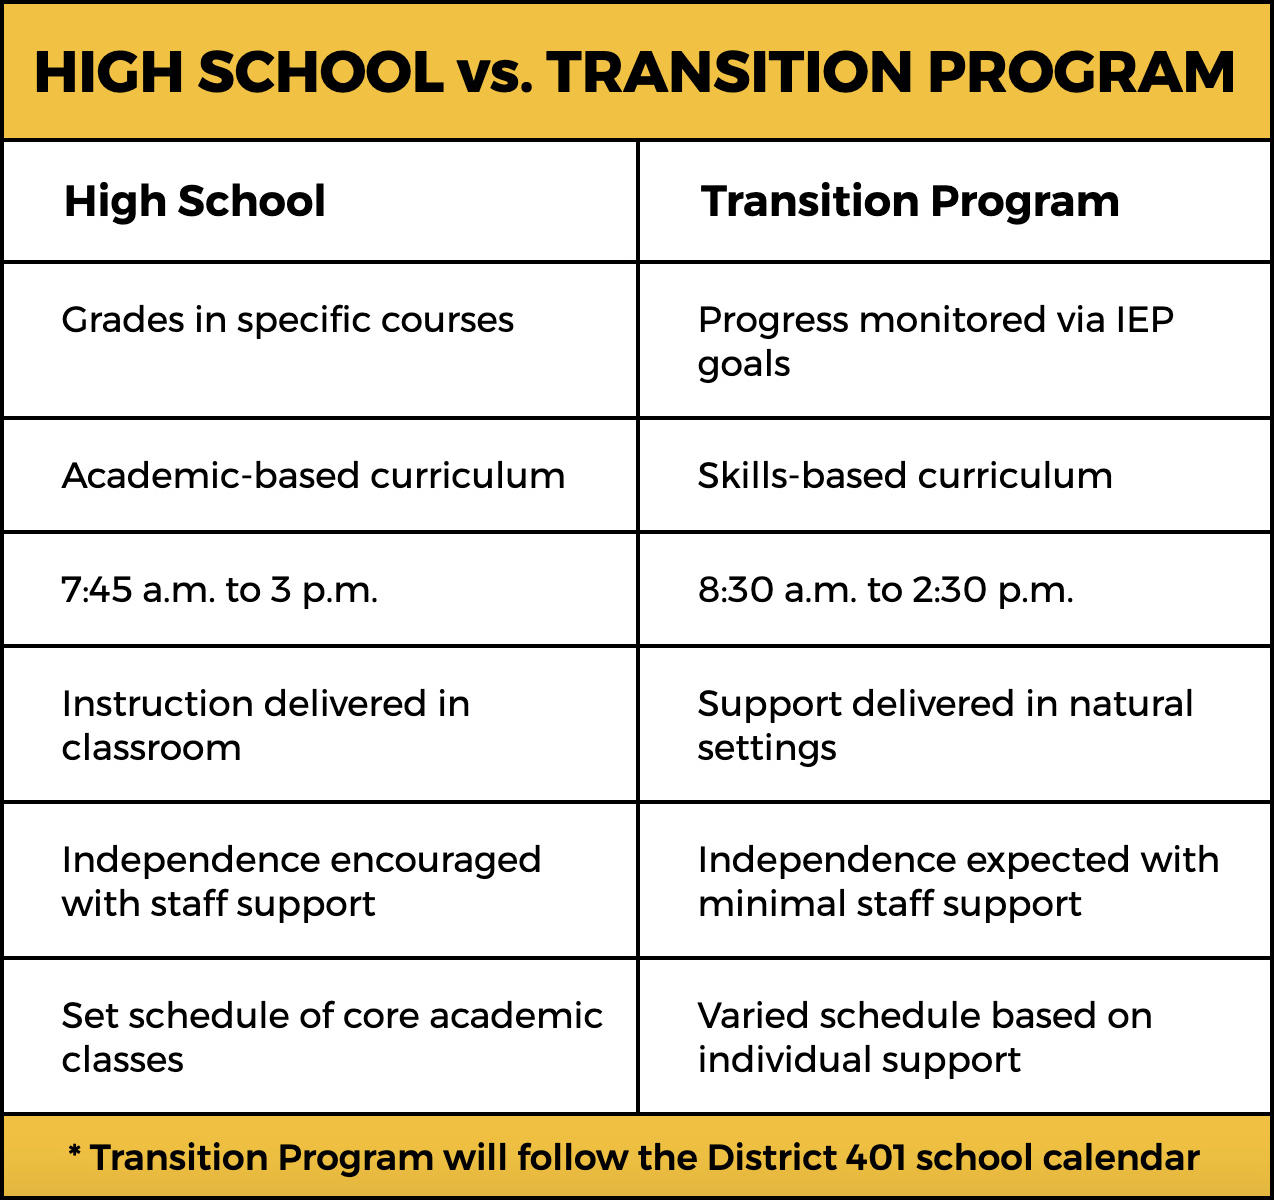 Differences between high school and the new transition program.